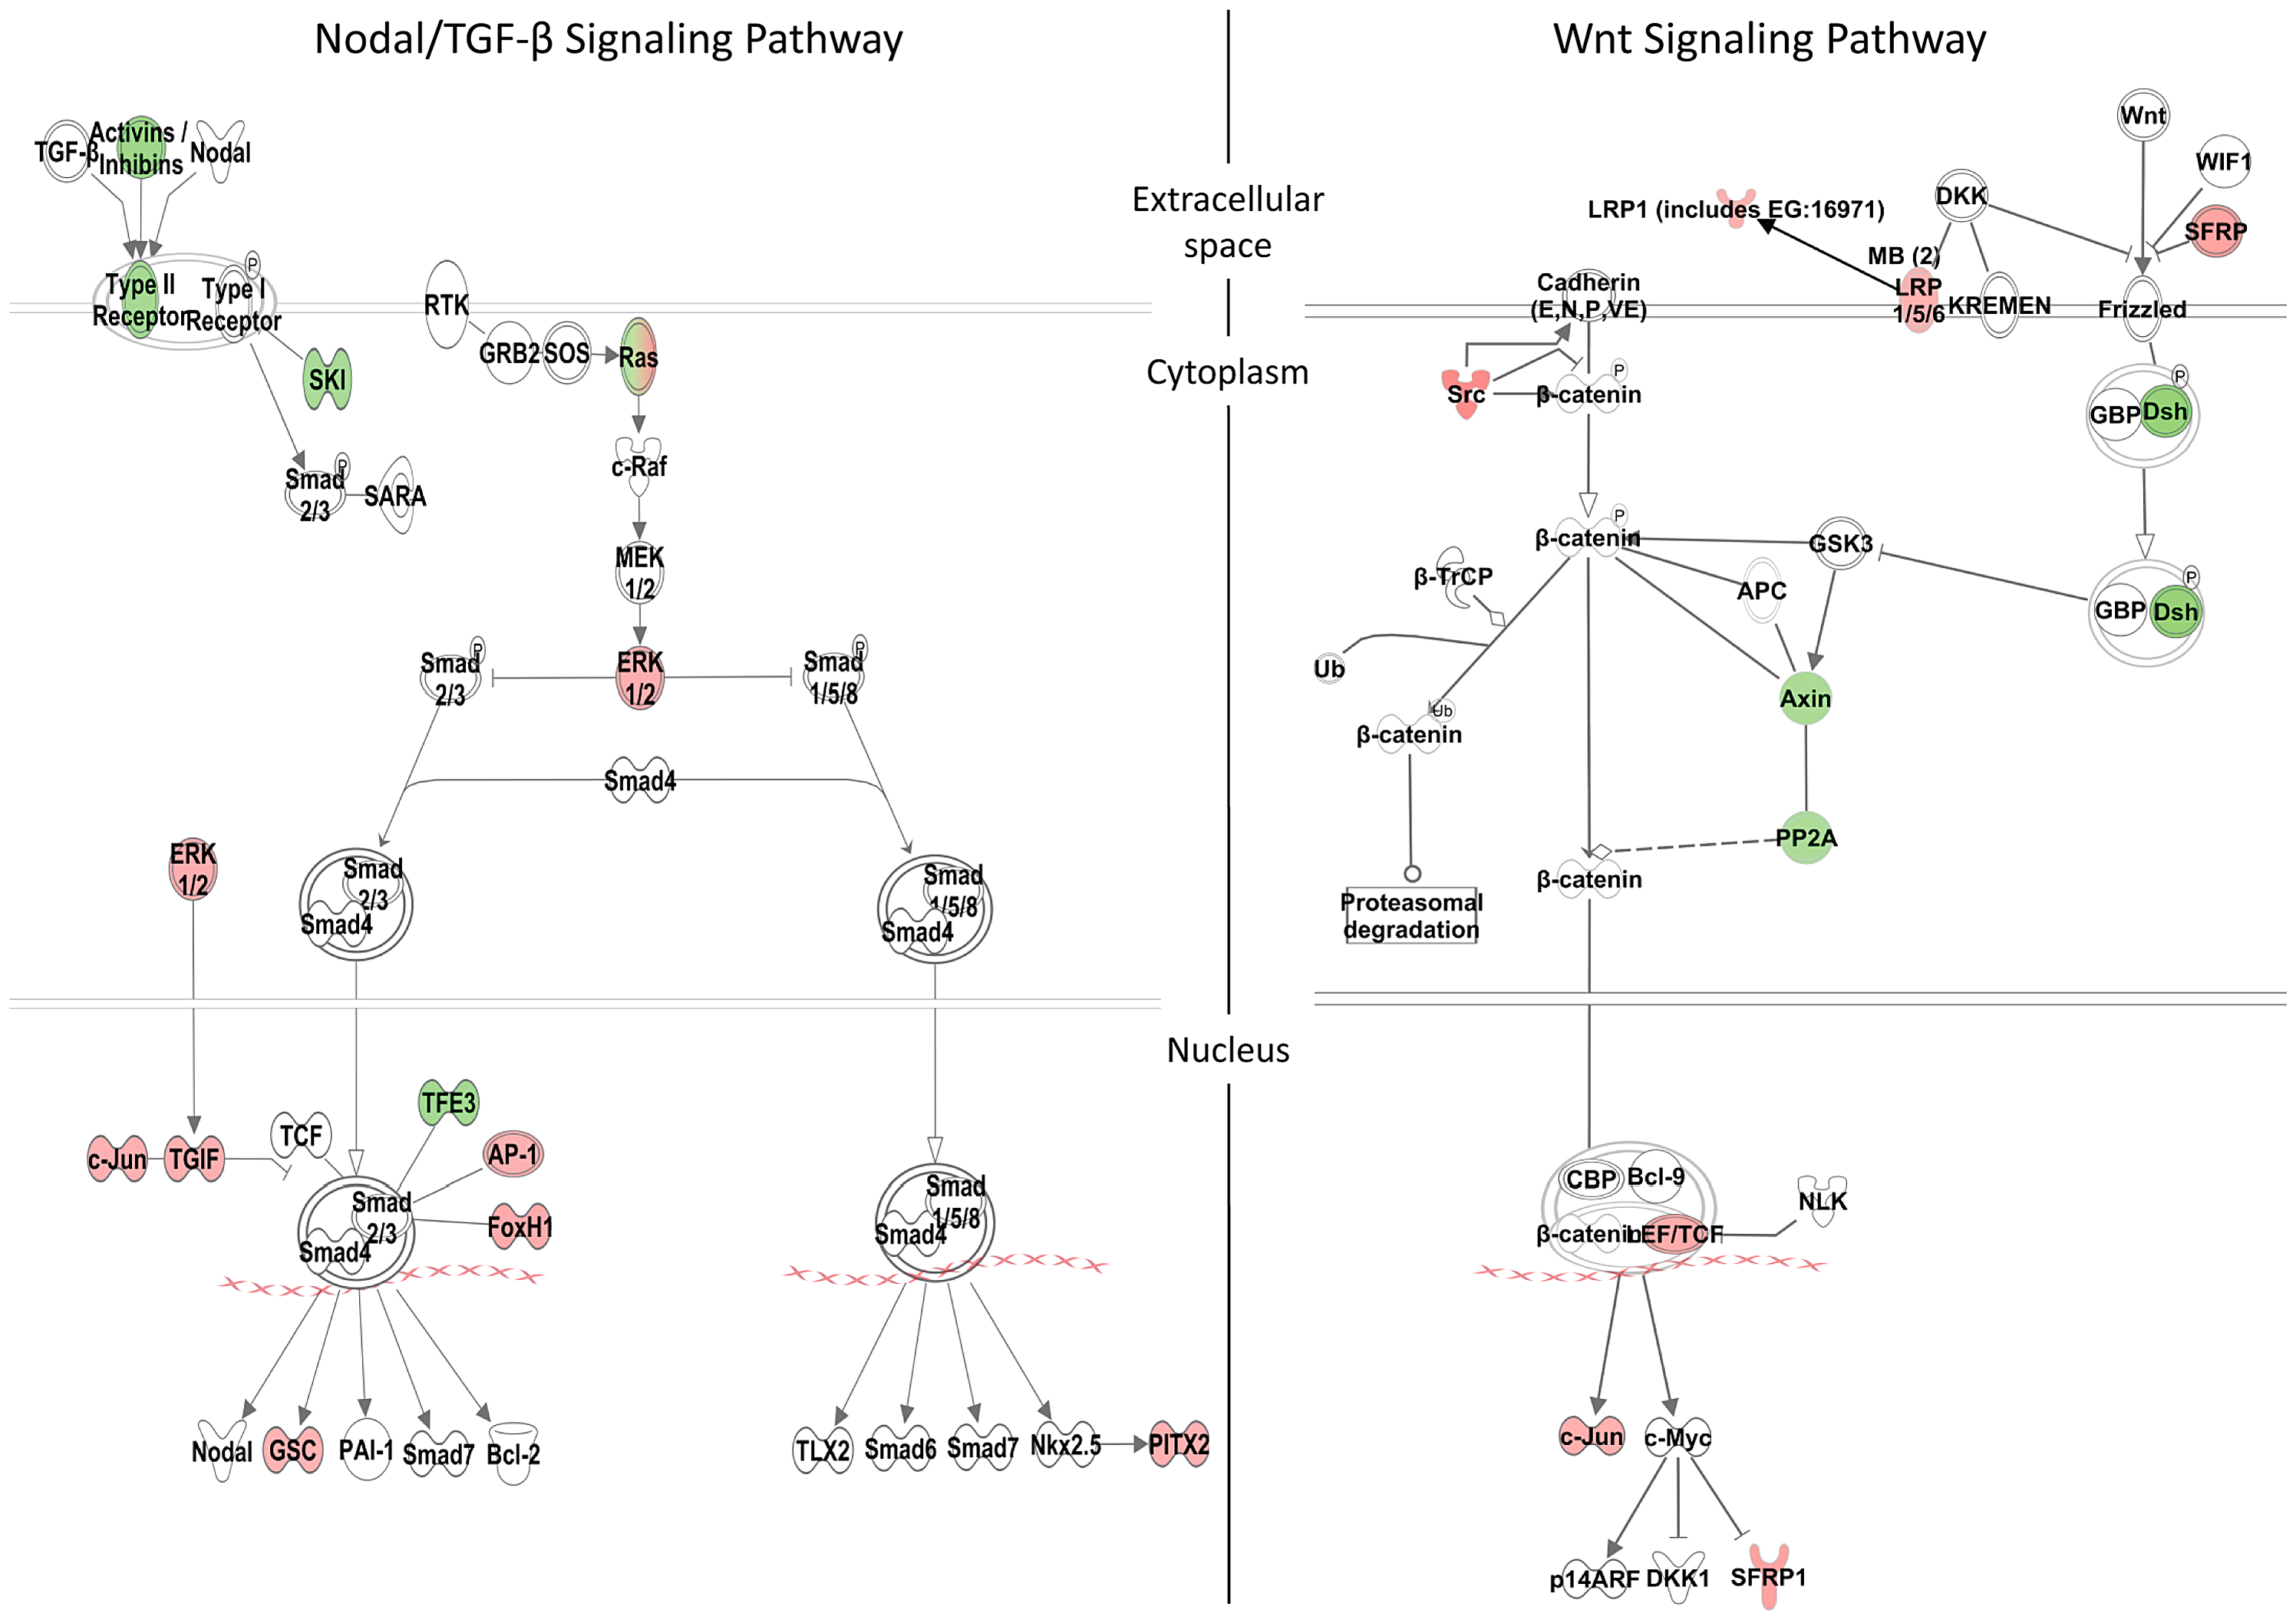 Zic3-regulated genes in the Nodal and Wnt signaling pathways.